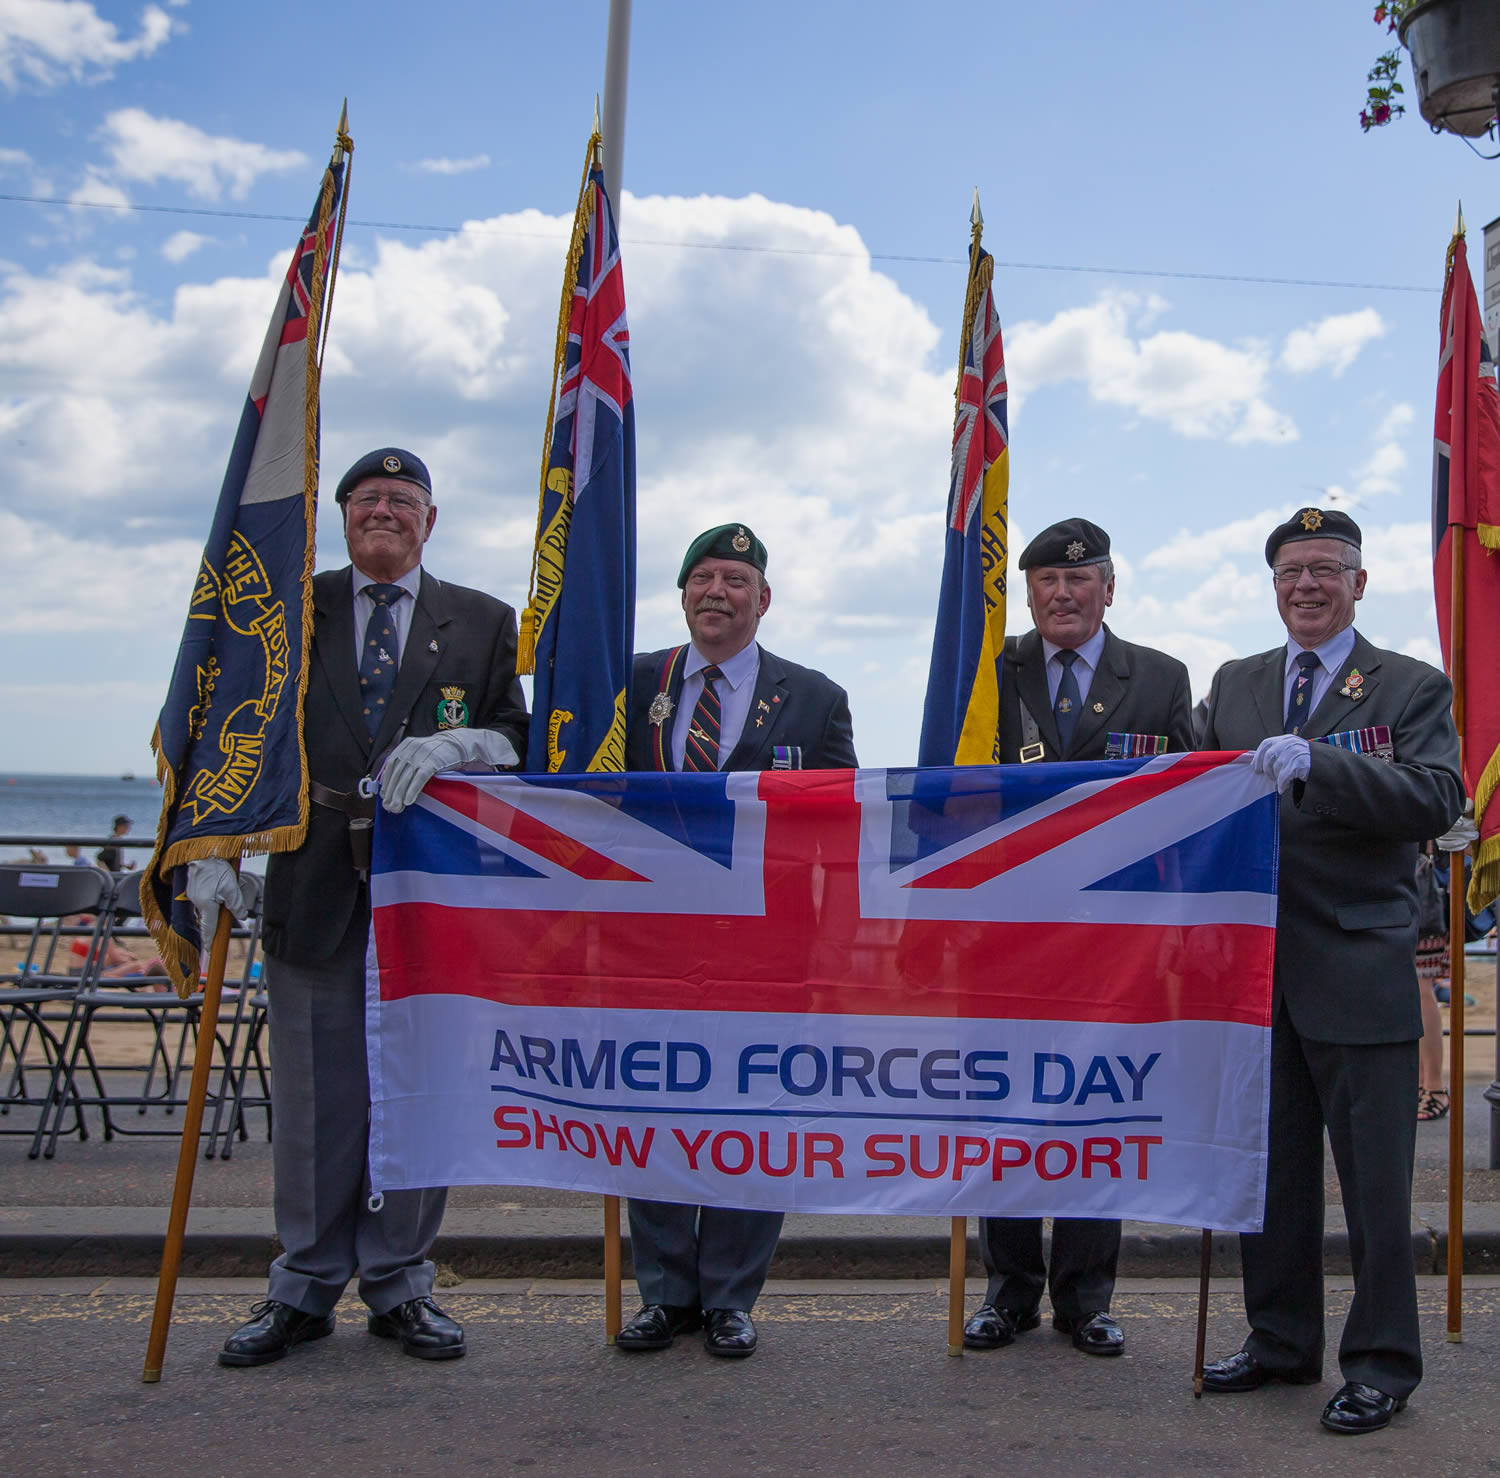 armed forces day - photo #26